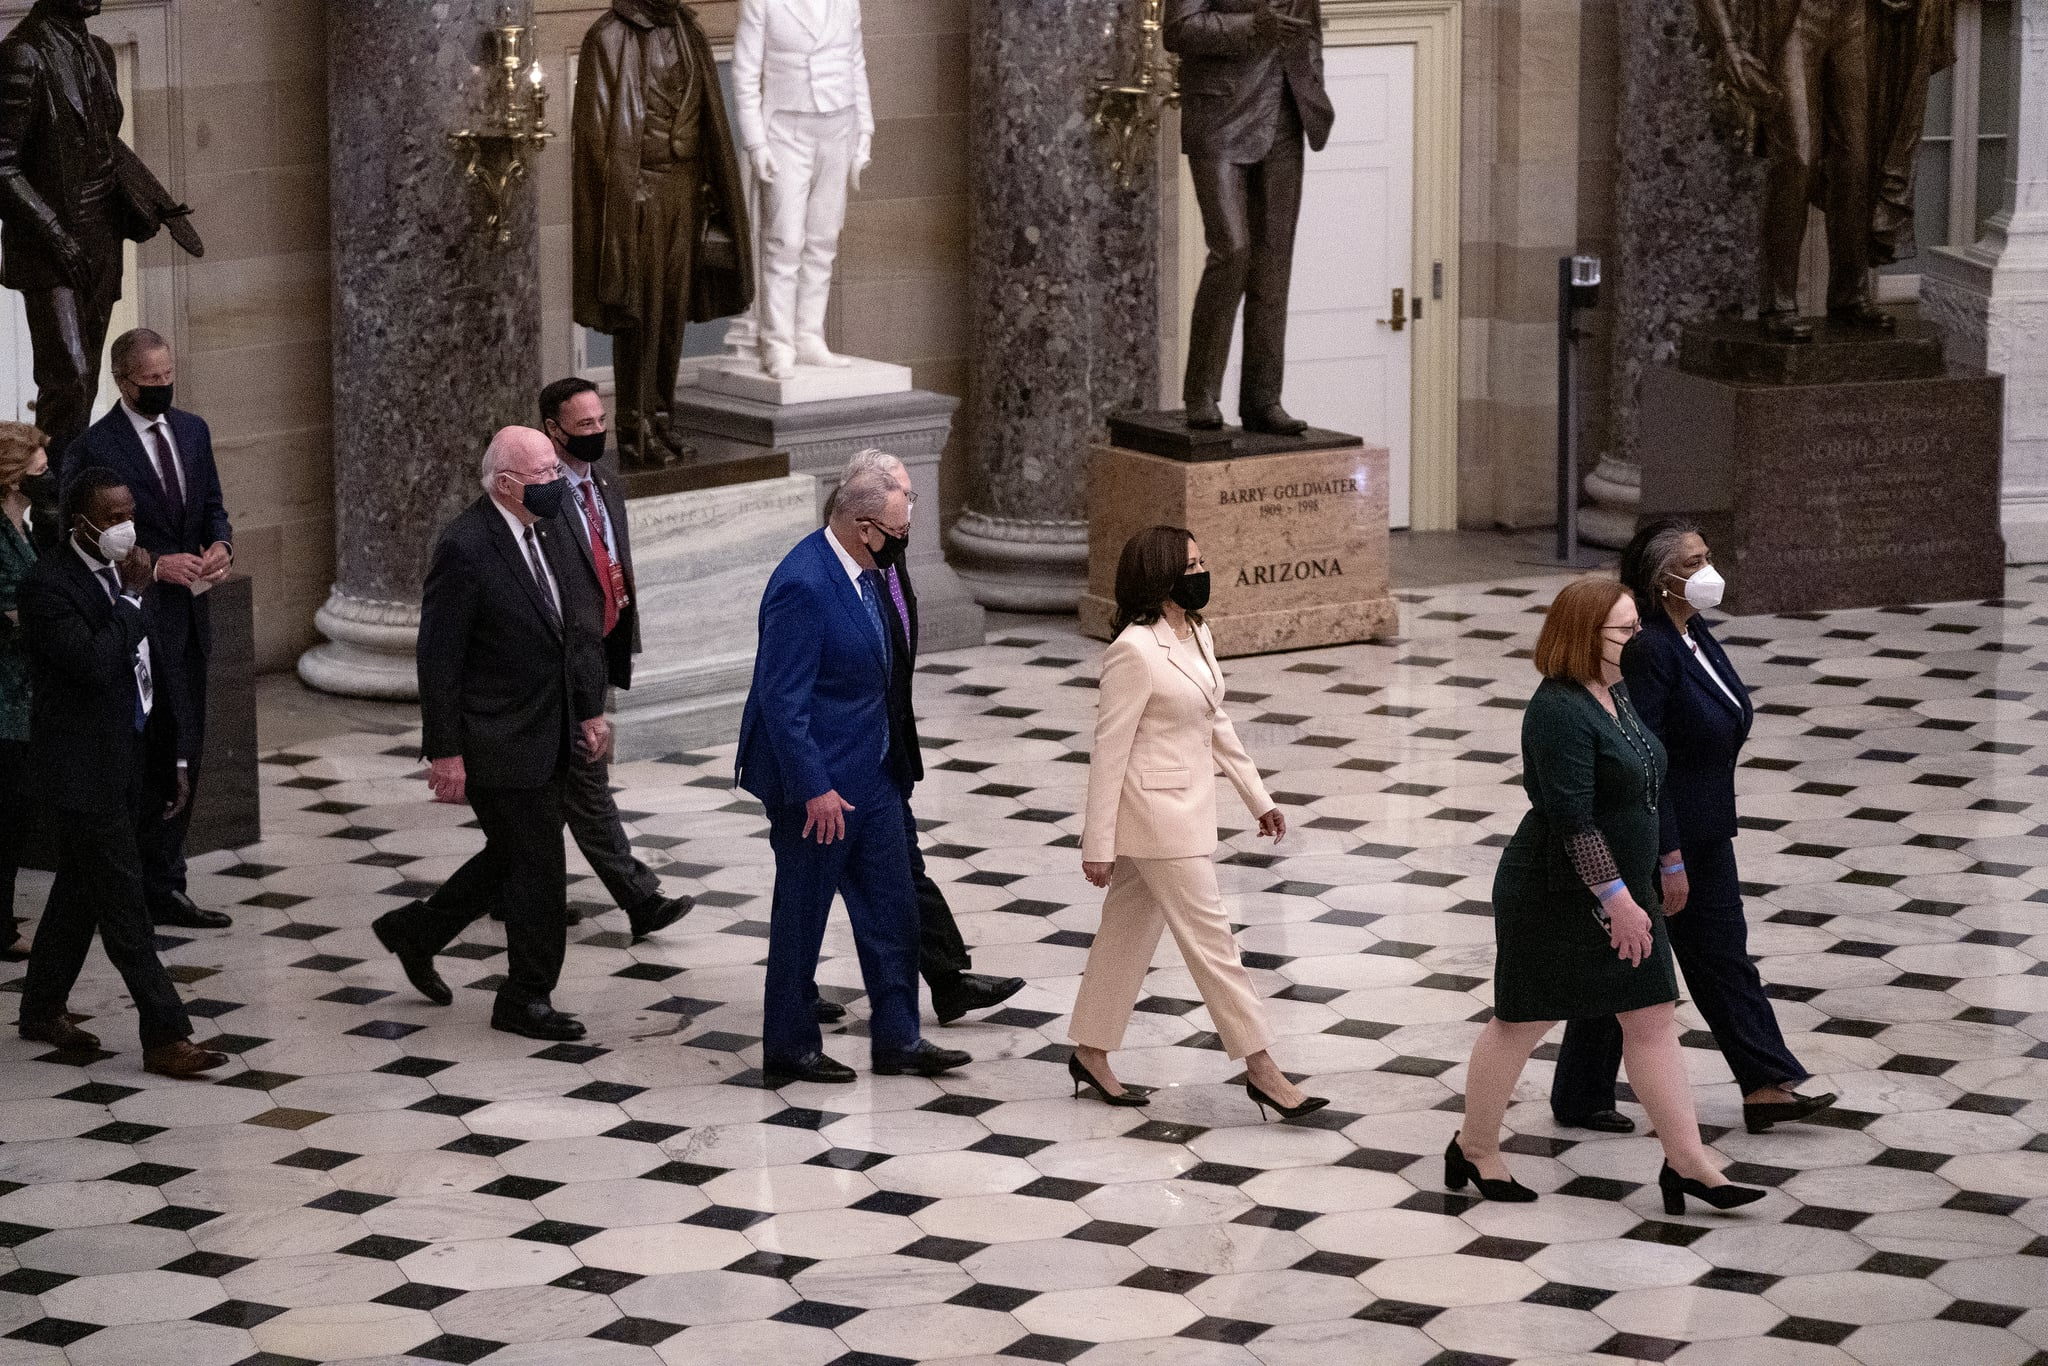 WASHINGTON, DC - APRIL 28: Vice President Kamala Harris, Majority Leader Charles Schumer (D-N.Y.), Minority Leader Mitch McConnell (R-Ky.), Sen. Patrick Leahy (D-Vt.) and members of the Senate walk through Statuary Hall in the U.S. Capitol in Washington, D.C., as they make their way to hear President Joe Biden give his first joint address to a session of Congress in the House chamber of the U.S. Capitol April 28, 2021 in Washington, DC.  (Photo by Greg Nash-Pool/Getty Images)